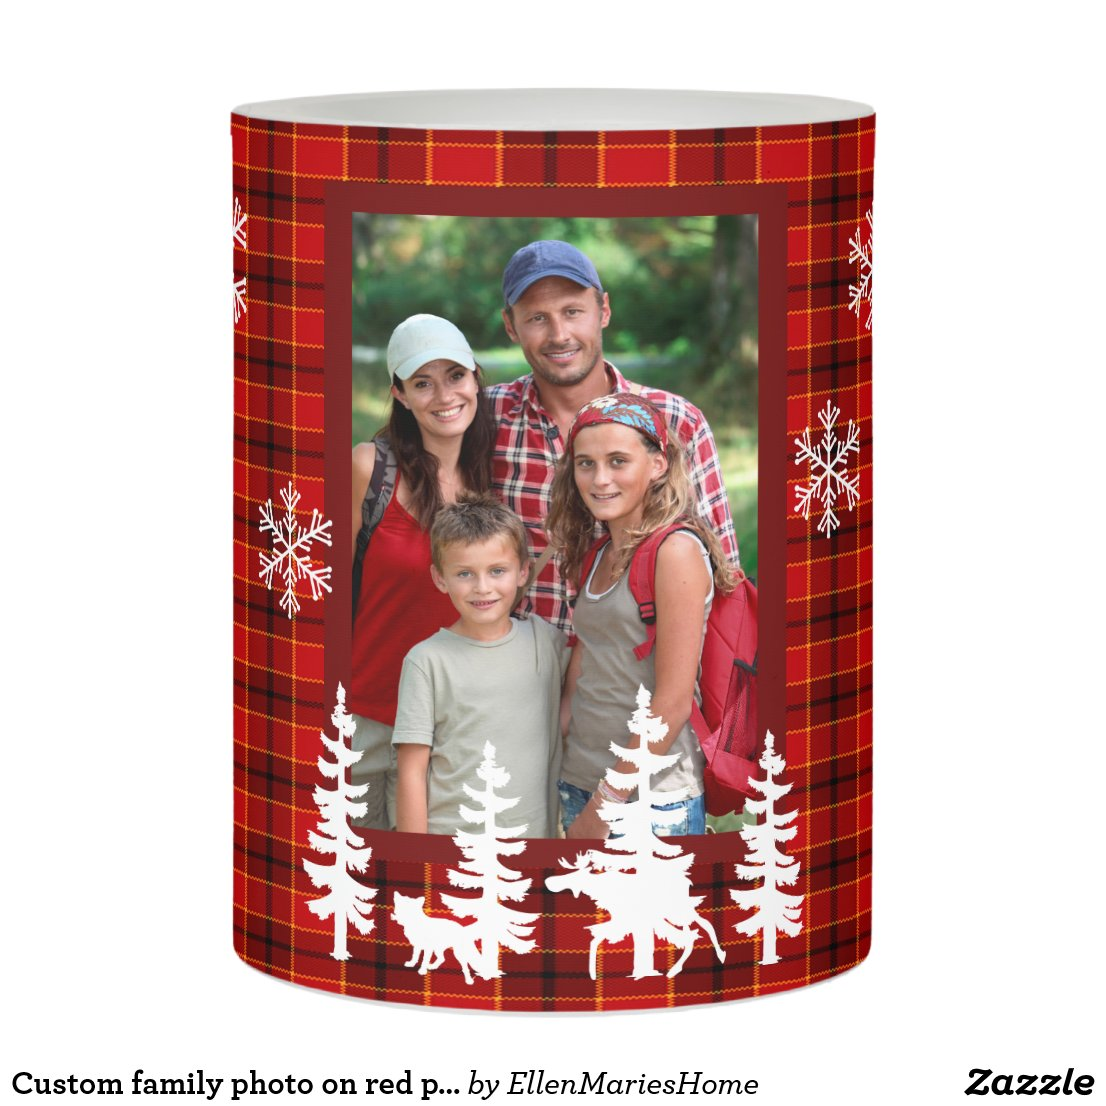 Custom family photo on red plaid forest snowflakes